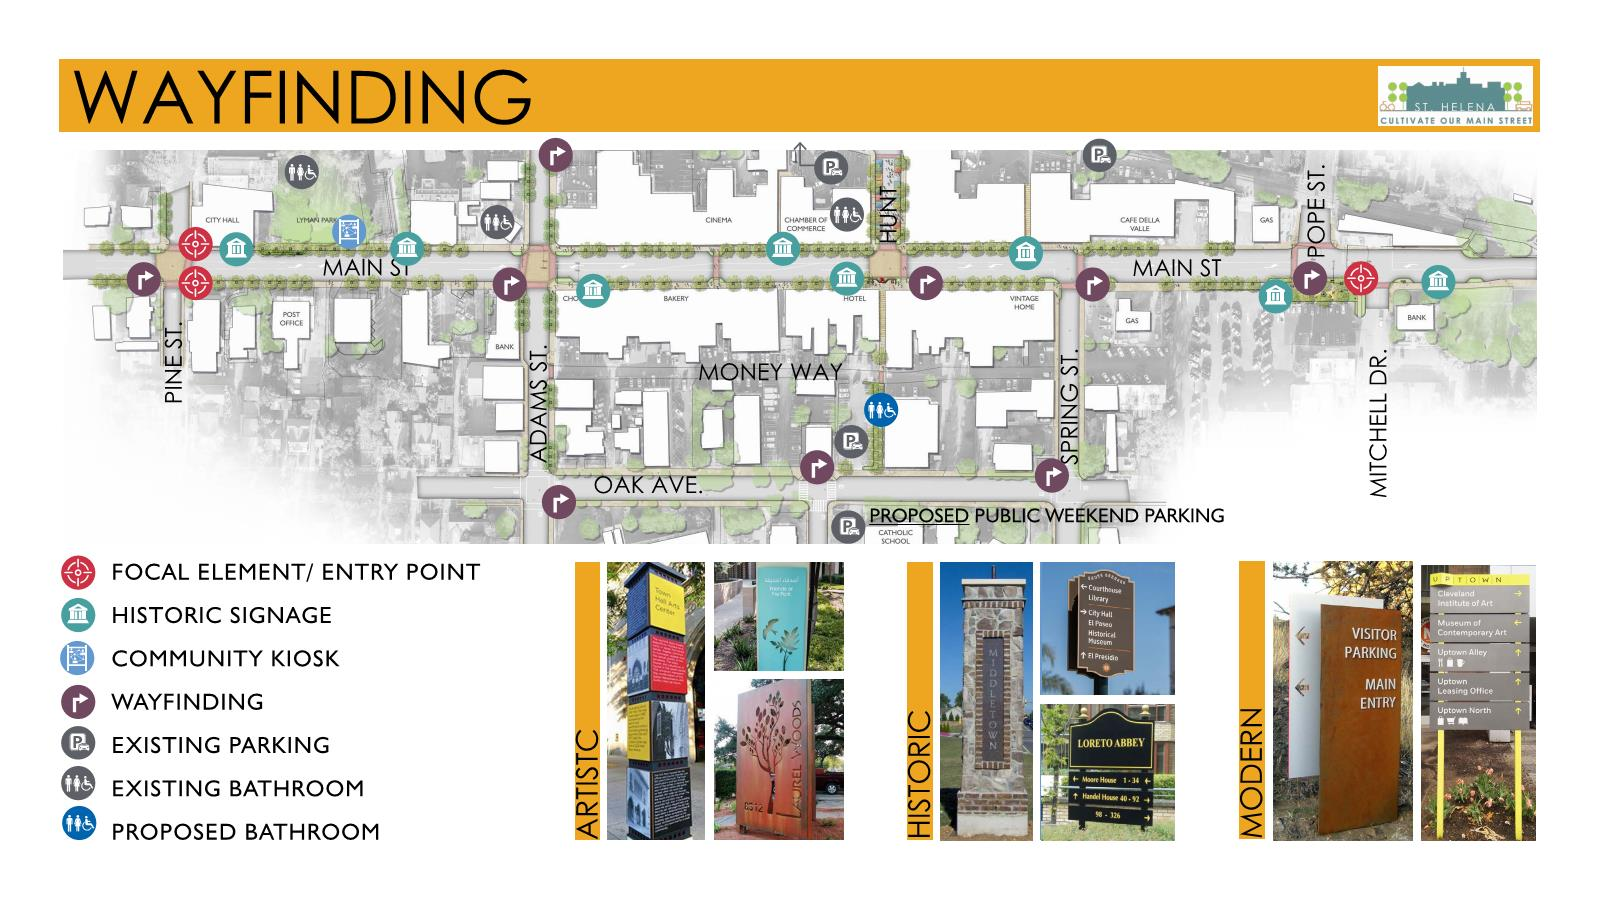 Wayfinding and Signage can direct users to restrooms, public parking, and key destinations.